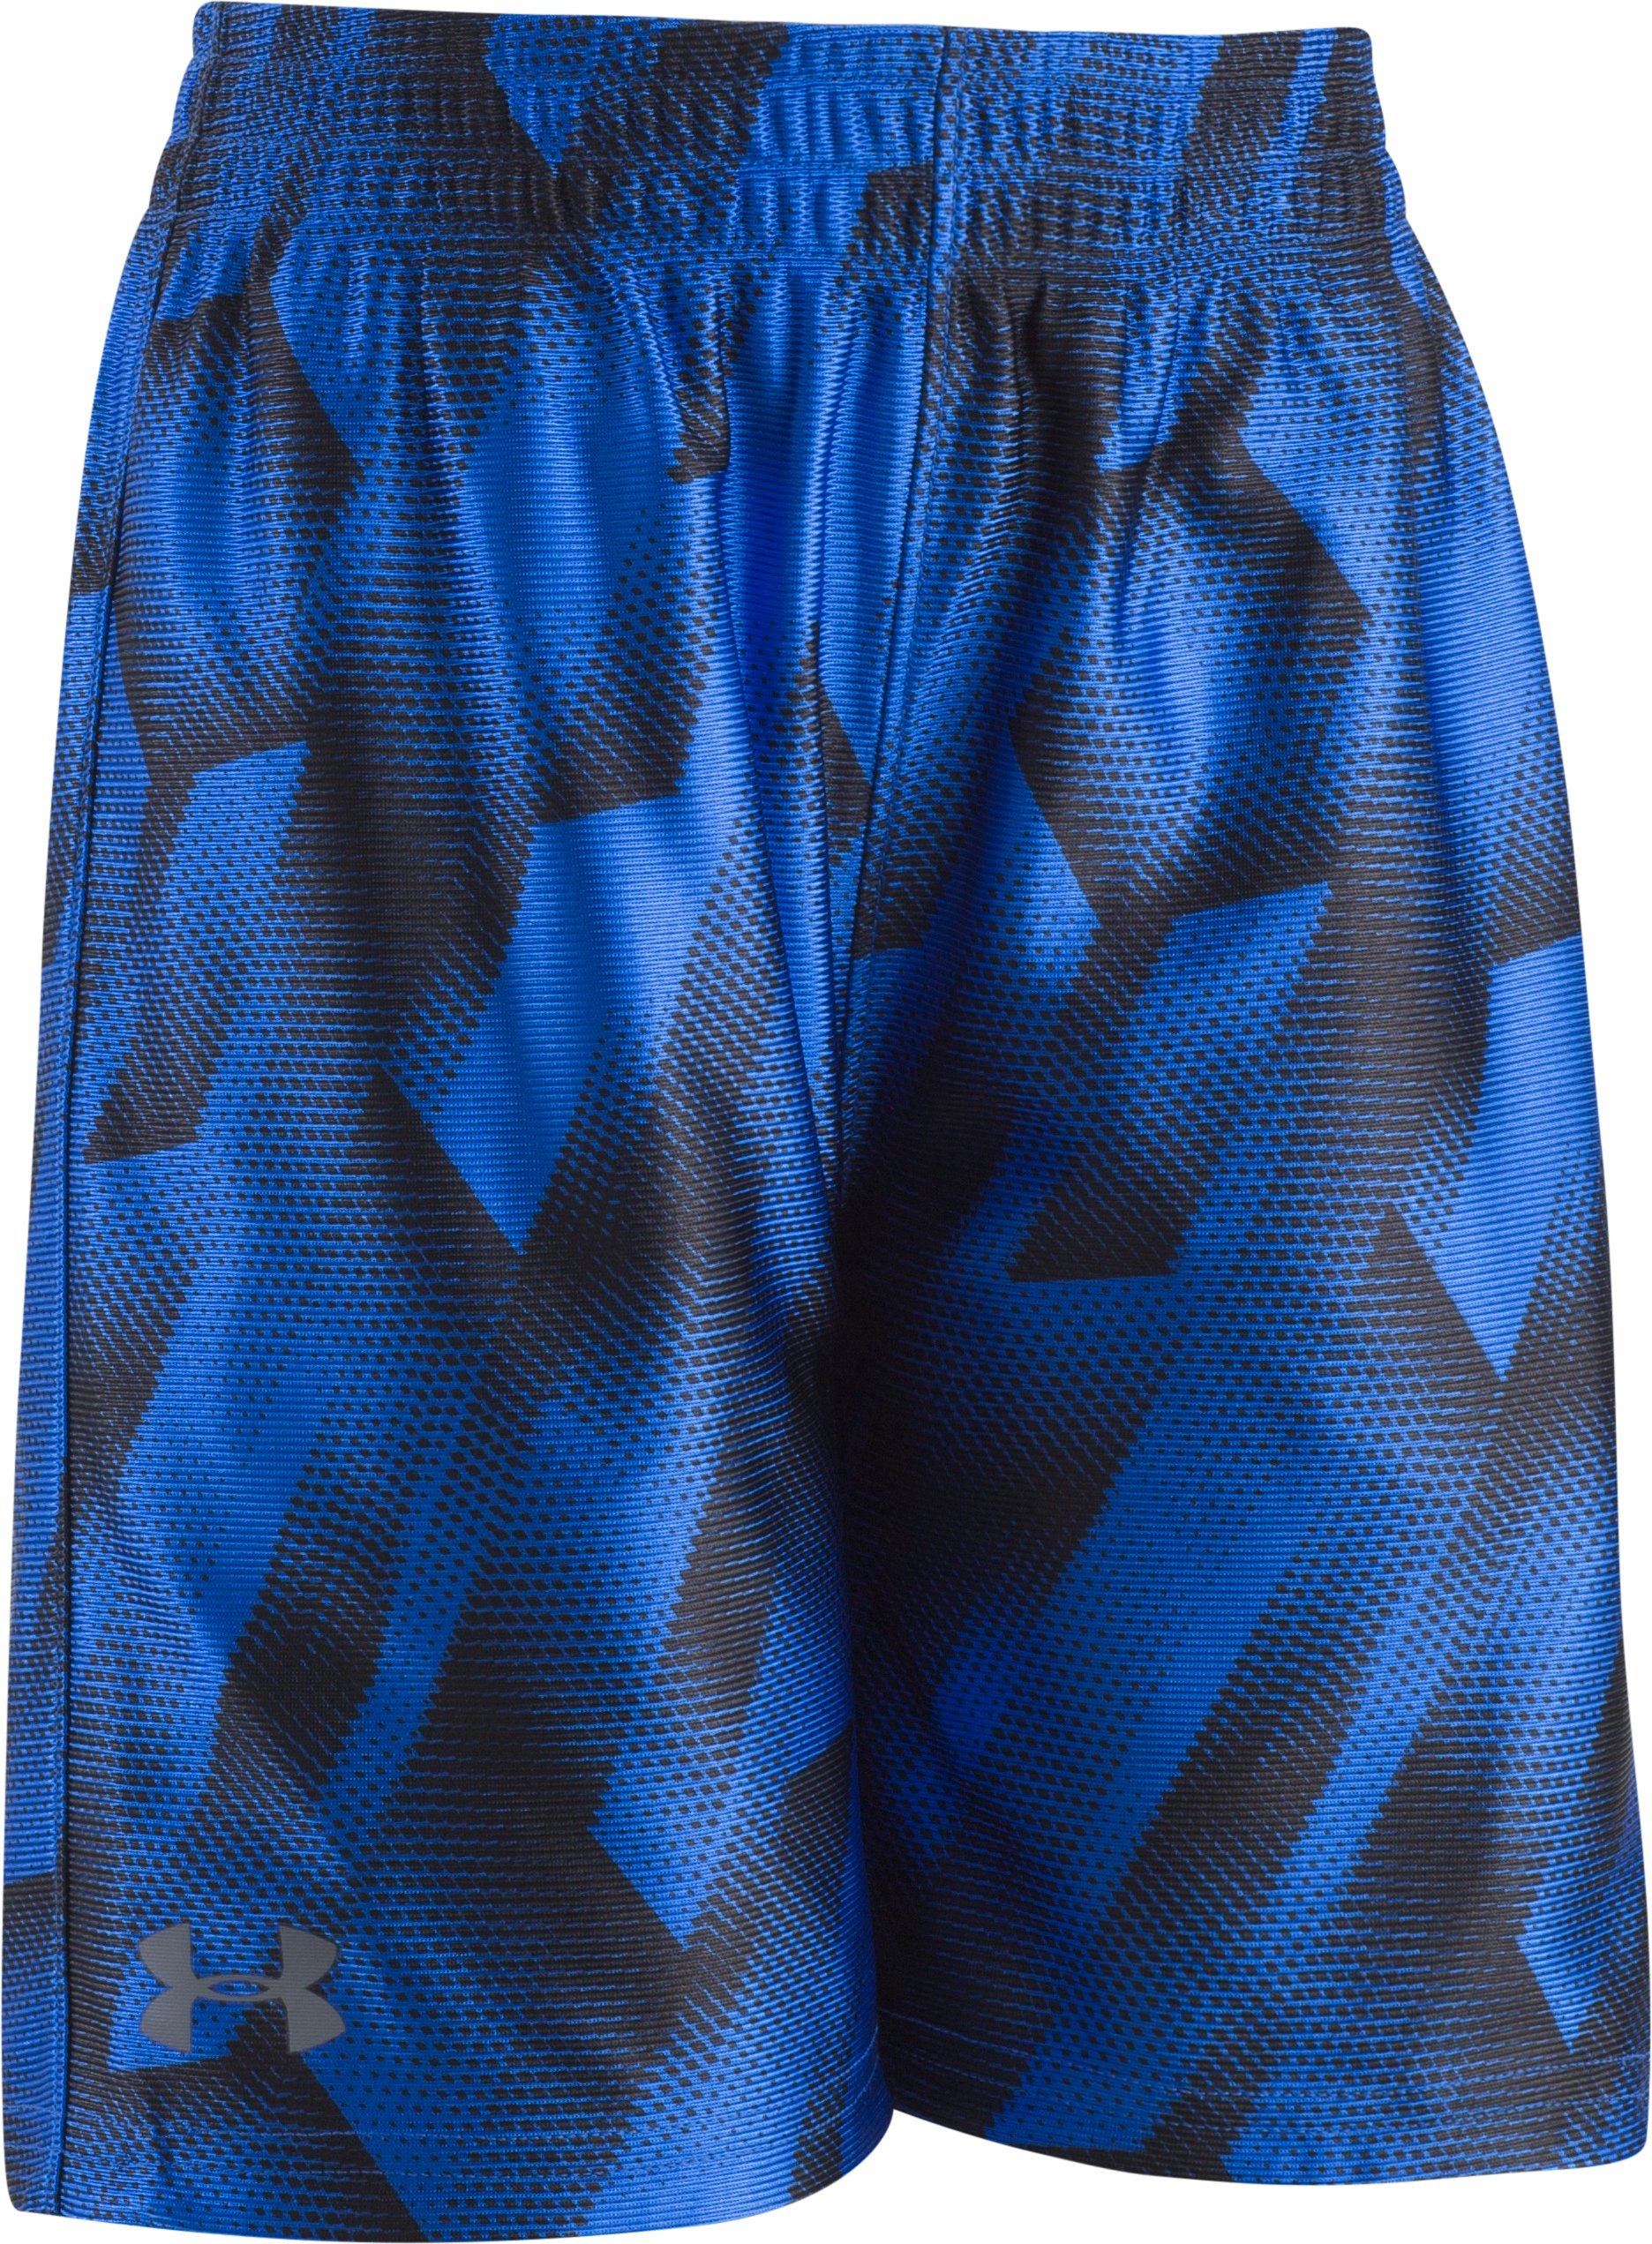 Boys' Toddler UA Sandstorm Speed Shorts, ULTRA BLUE